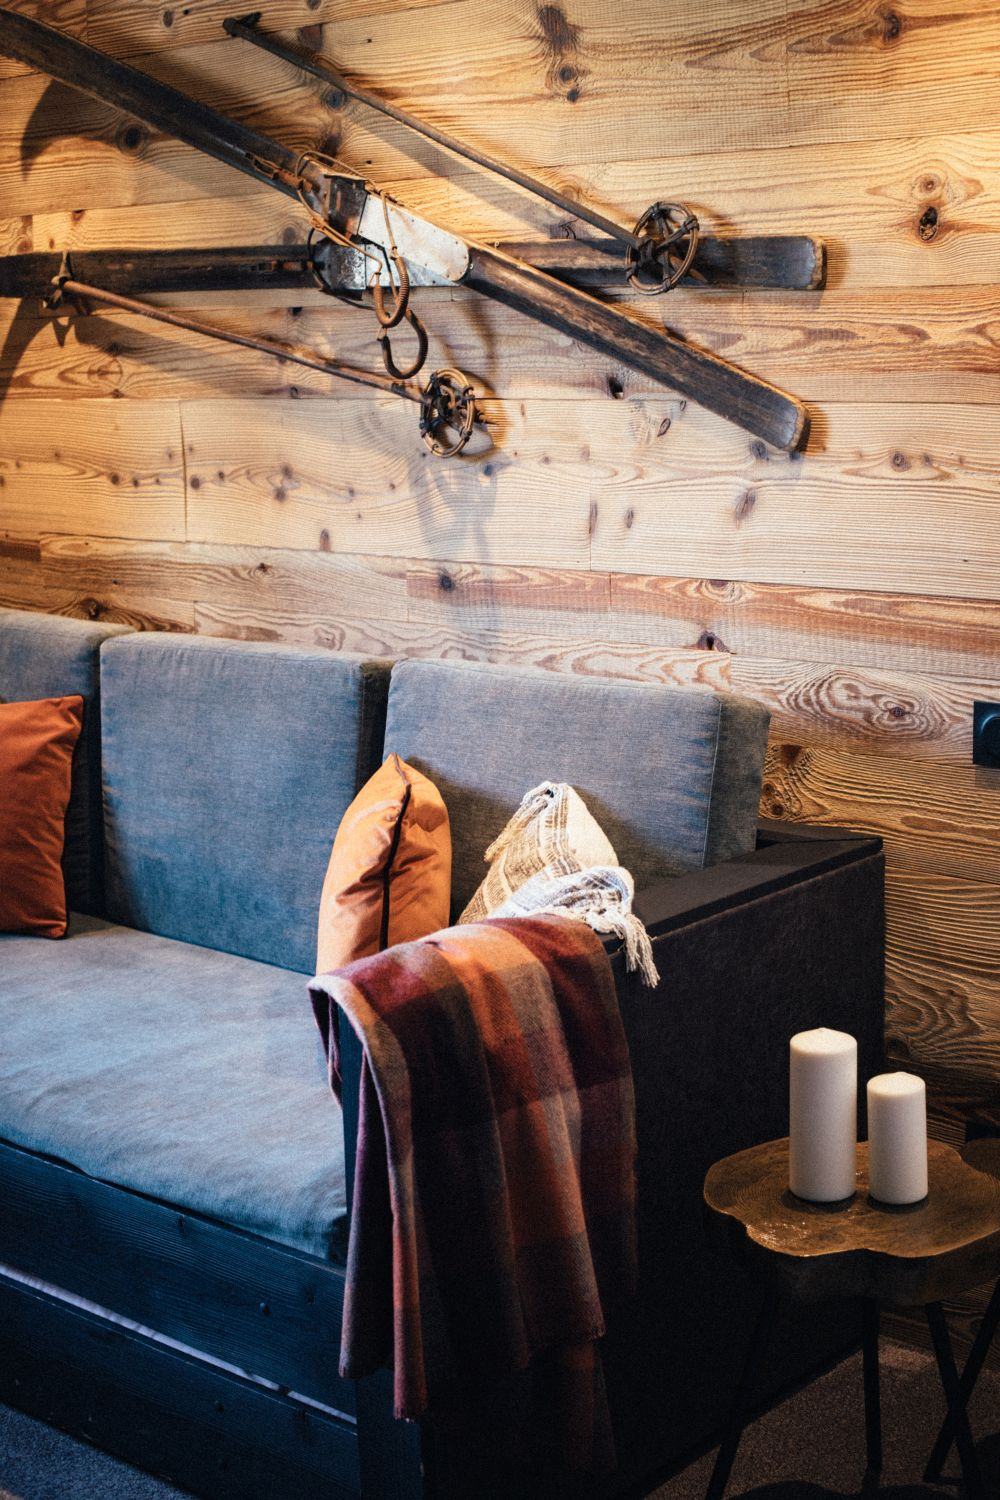 The hotel's new interior design focuses mainly on warm and subtle color tones and cozy textures and finishes